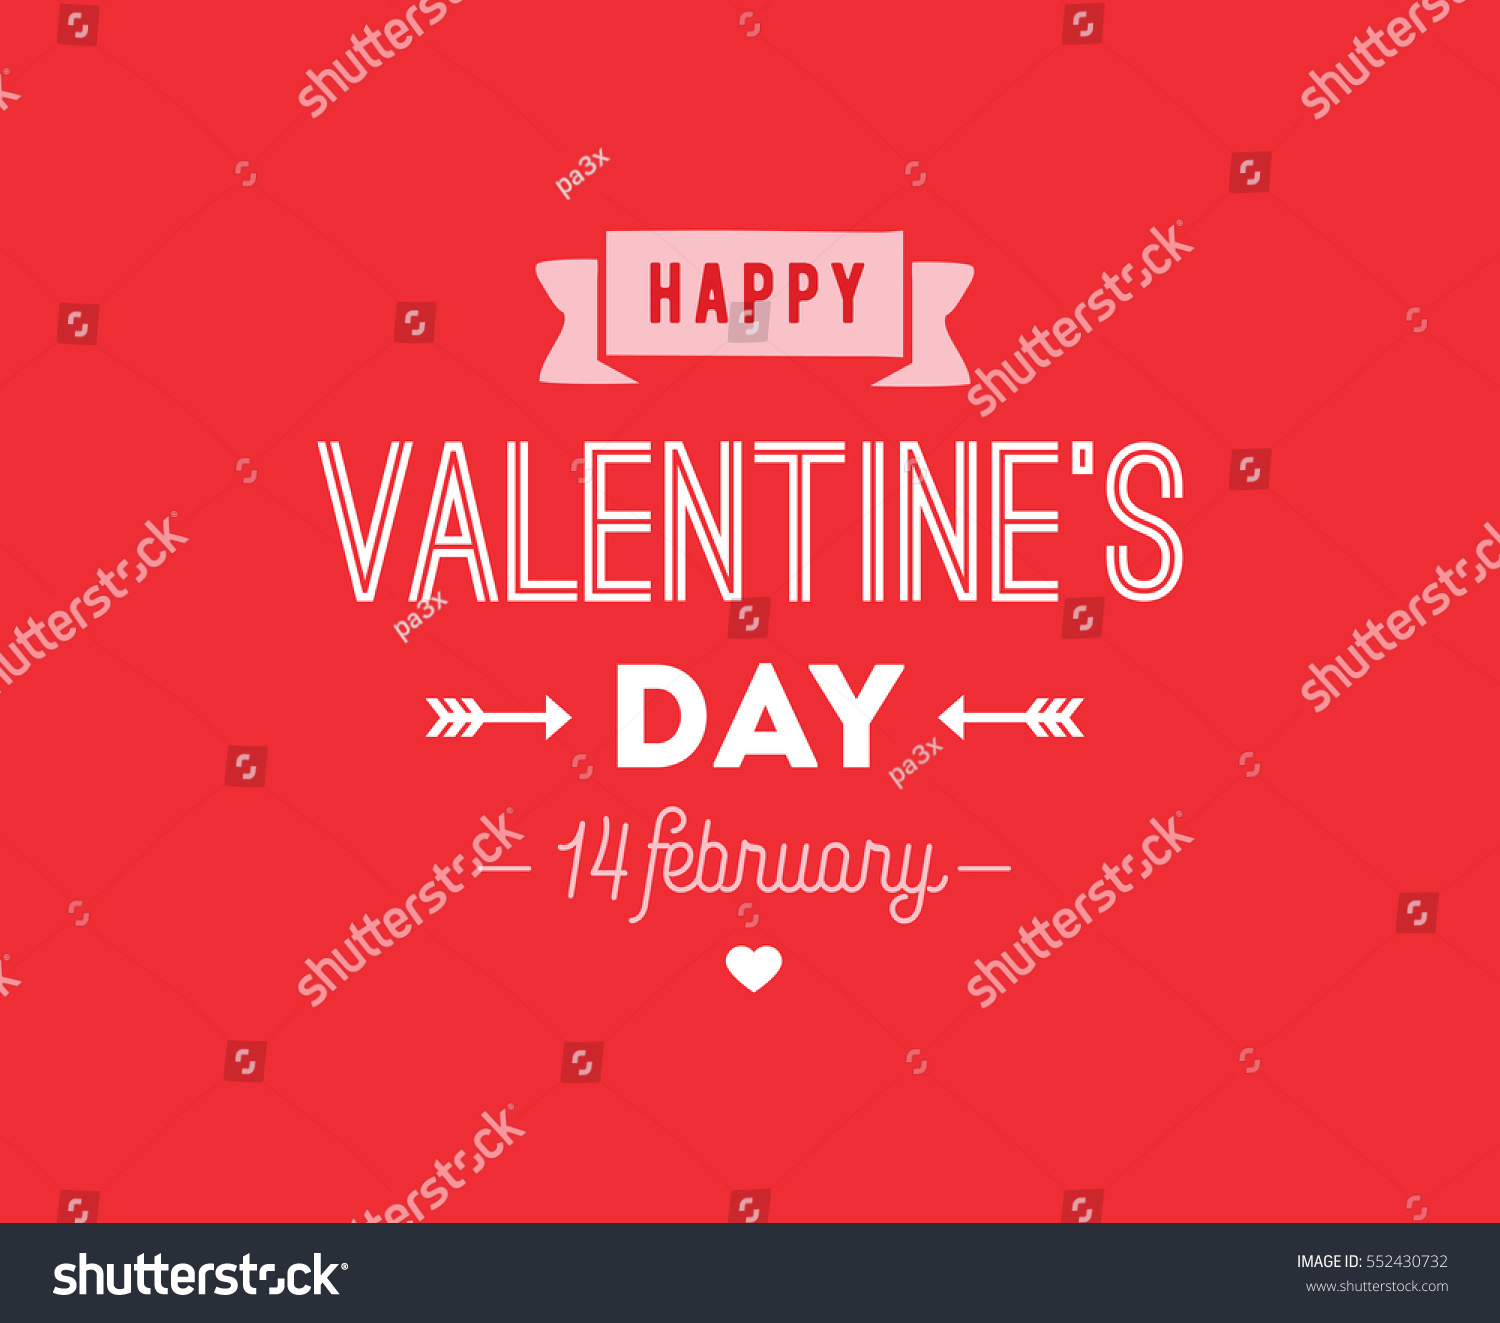 Happy Valentines day typography. Vector text design. Usable for banners, greeting cards, gifts etc. 14 february   #552430732